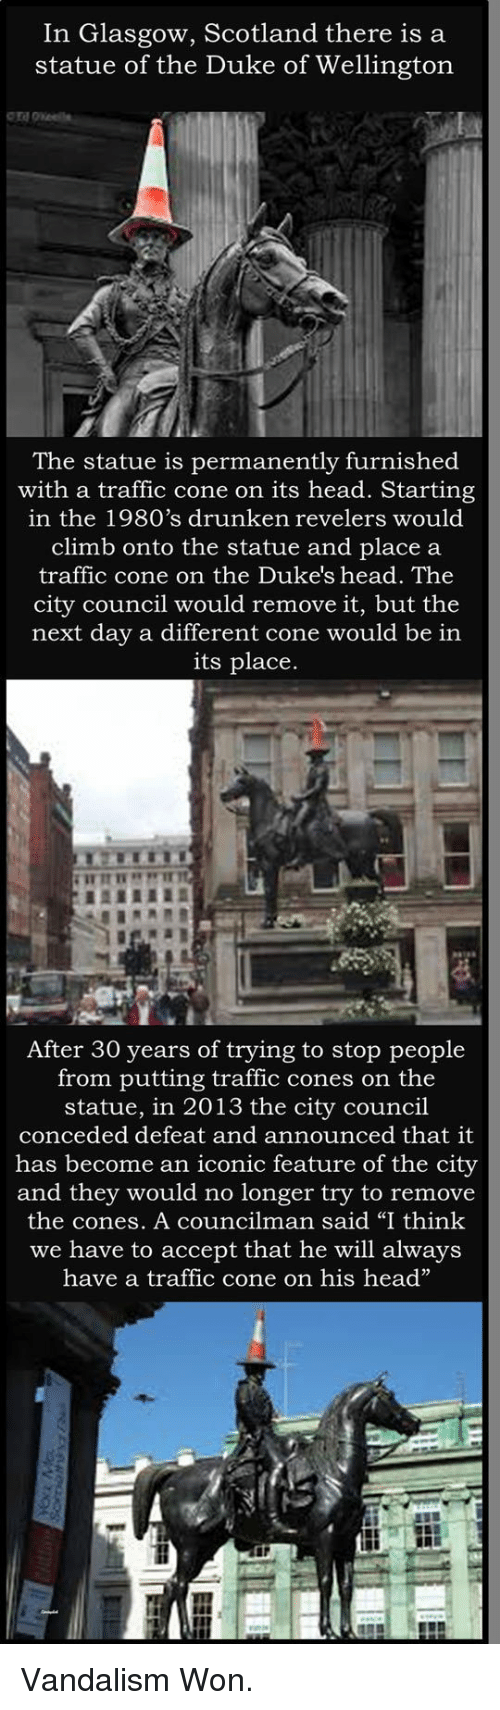 "Head, Traffic, and Duke: In Glasgow, Scotland there is a  statue of the Duke of Wellington  The statue is permanently furnished  with a traffic cone on its head. Starting  in the 1980's drunken revelers would  climb onto the statue and place a  traffic cone on the Duke's head. The  city council would remove it, but the  next day a different cone would be in  its place.  After 30 years of trying to stop people  from putting traffic cones on the  statue, in 2013 the city council  conceded defeat and announced that it  has become an iconic feature of the city  and they would no longer try to remove  the cones. A councilman said ""I think  we have to accept that he will always  have a traffic cone on his head"" <p>Vandalism Won.</p>"